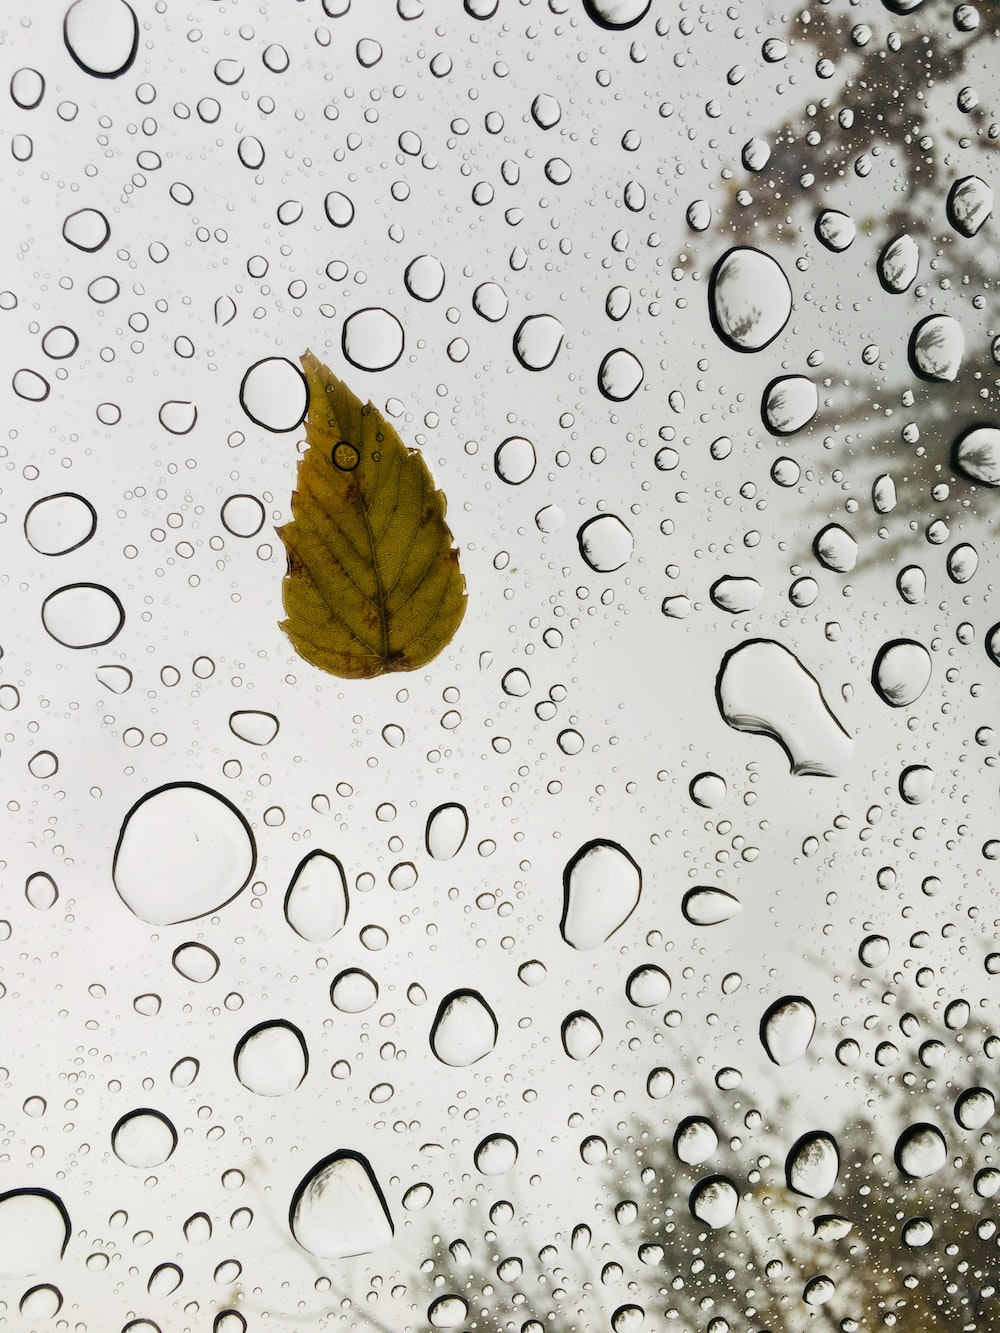 brown leaf on water droplets